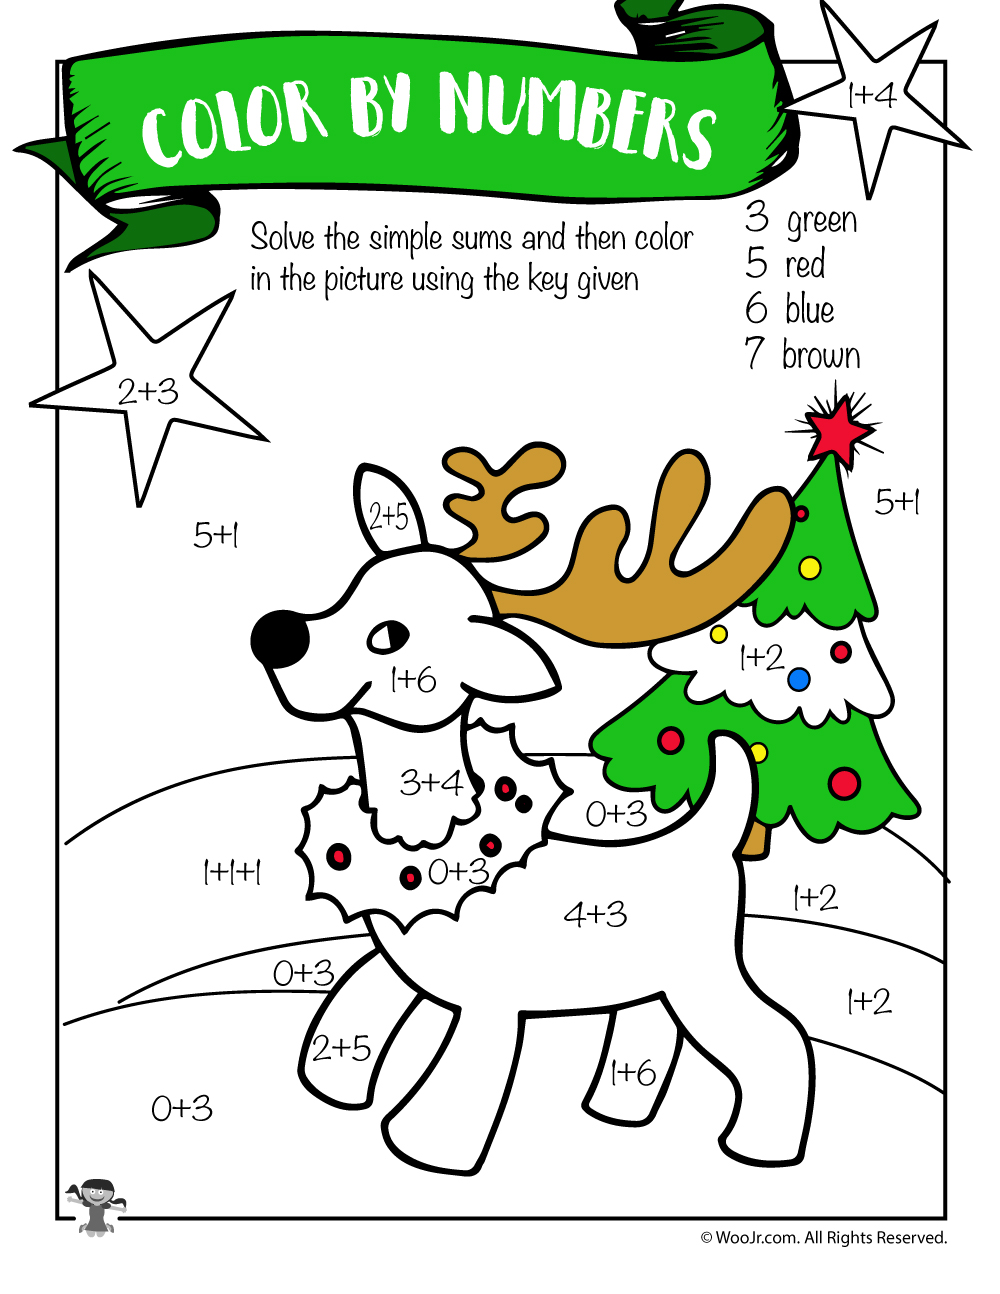 worksheet Math Coloring Worksheets 1st Grade free printable christmas math worksheets pre k 1st grade 2nd reindeer addition coloring worksheet